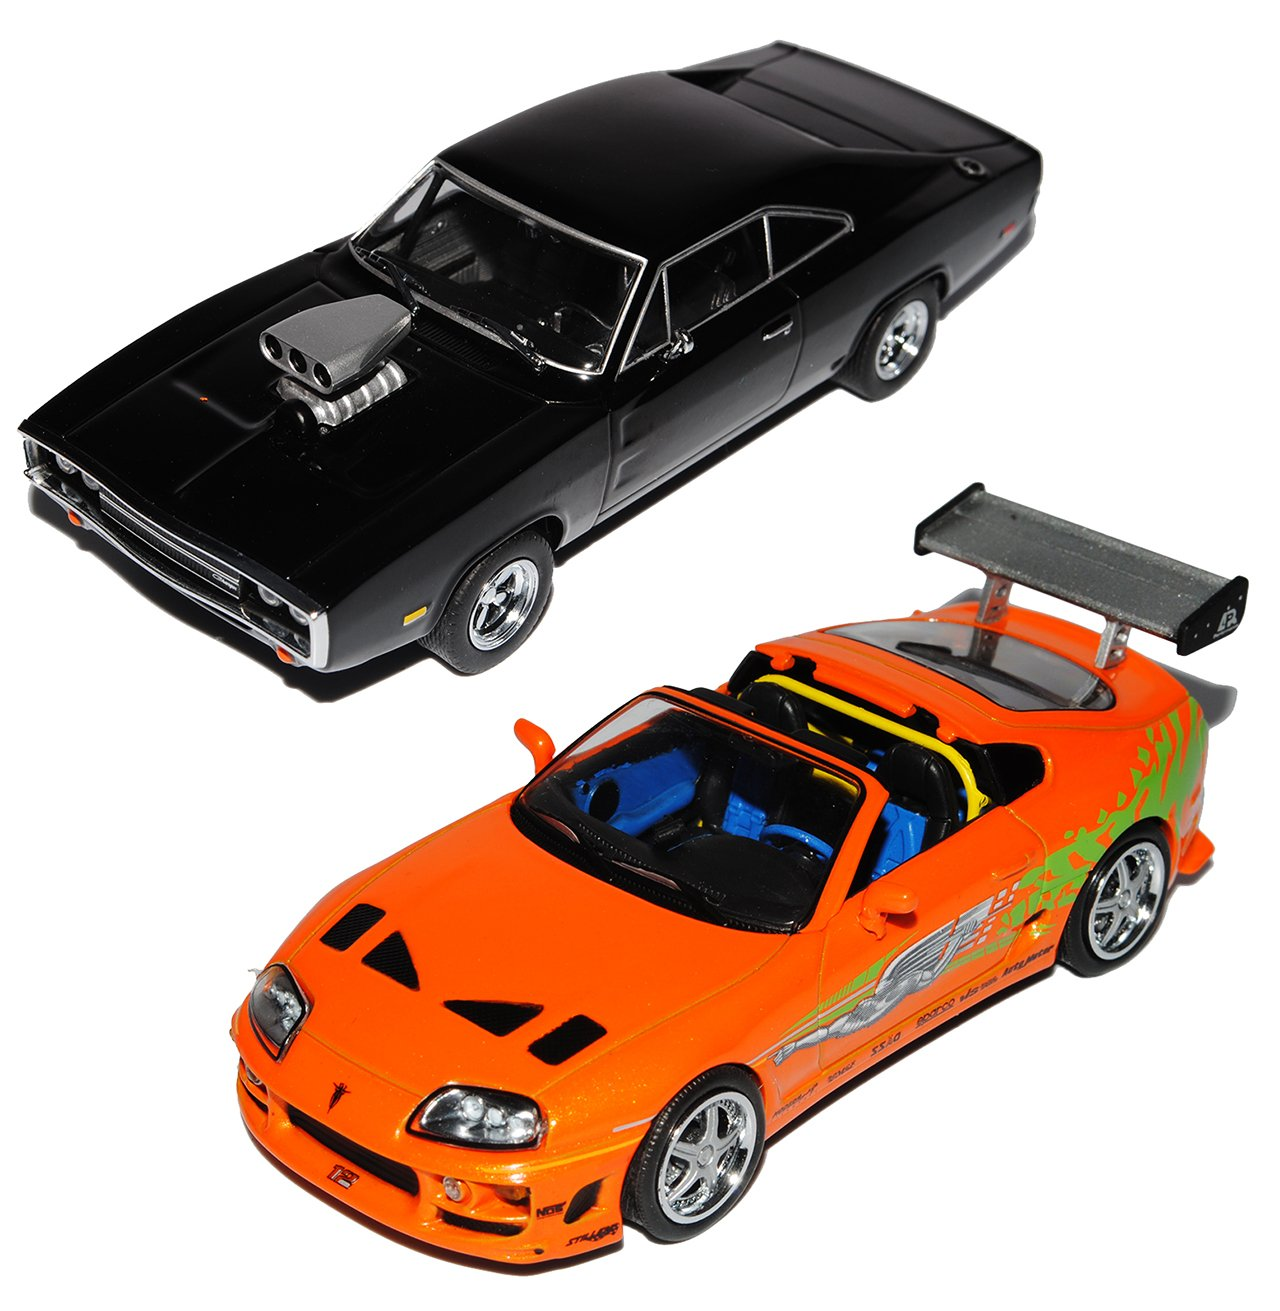 Grünlight Drag Drag Drag Race Toyota Supra MKIV Orange Ab 1993 und Dodge Charger R/T 1970 Coupe Schwarz Dom Vin Diesel Fast and Furious 2001 1/43 Modell Auto mit individiuellem Wunschkennzeichen 189646